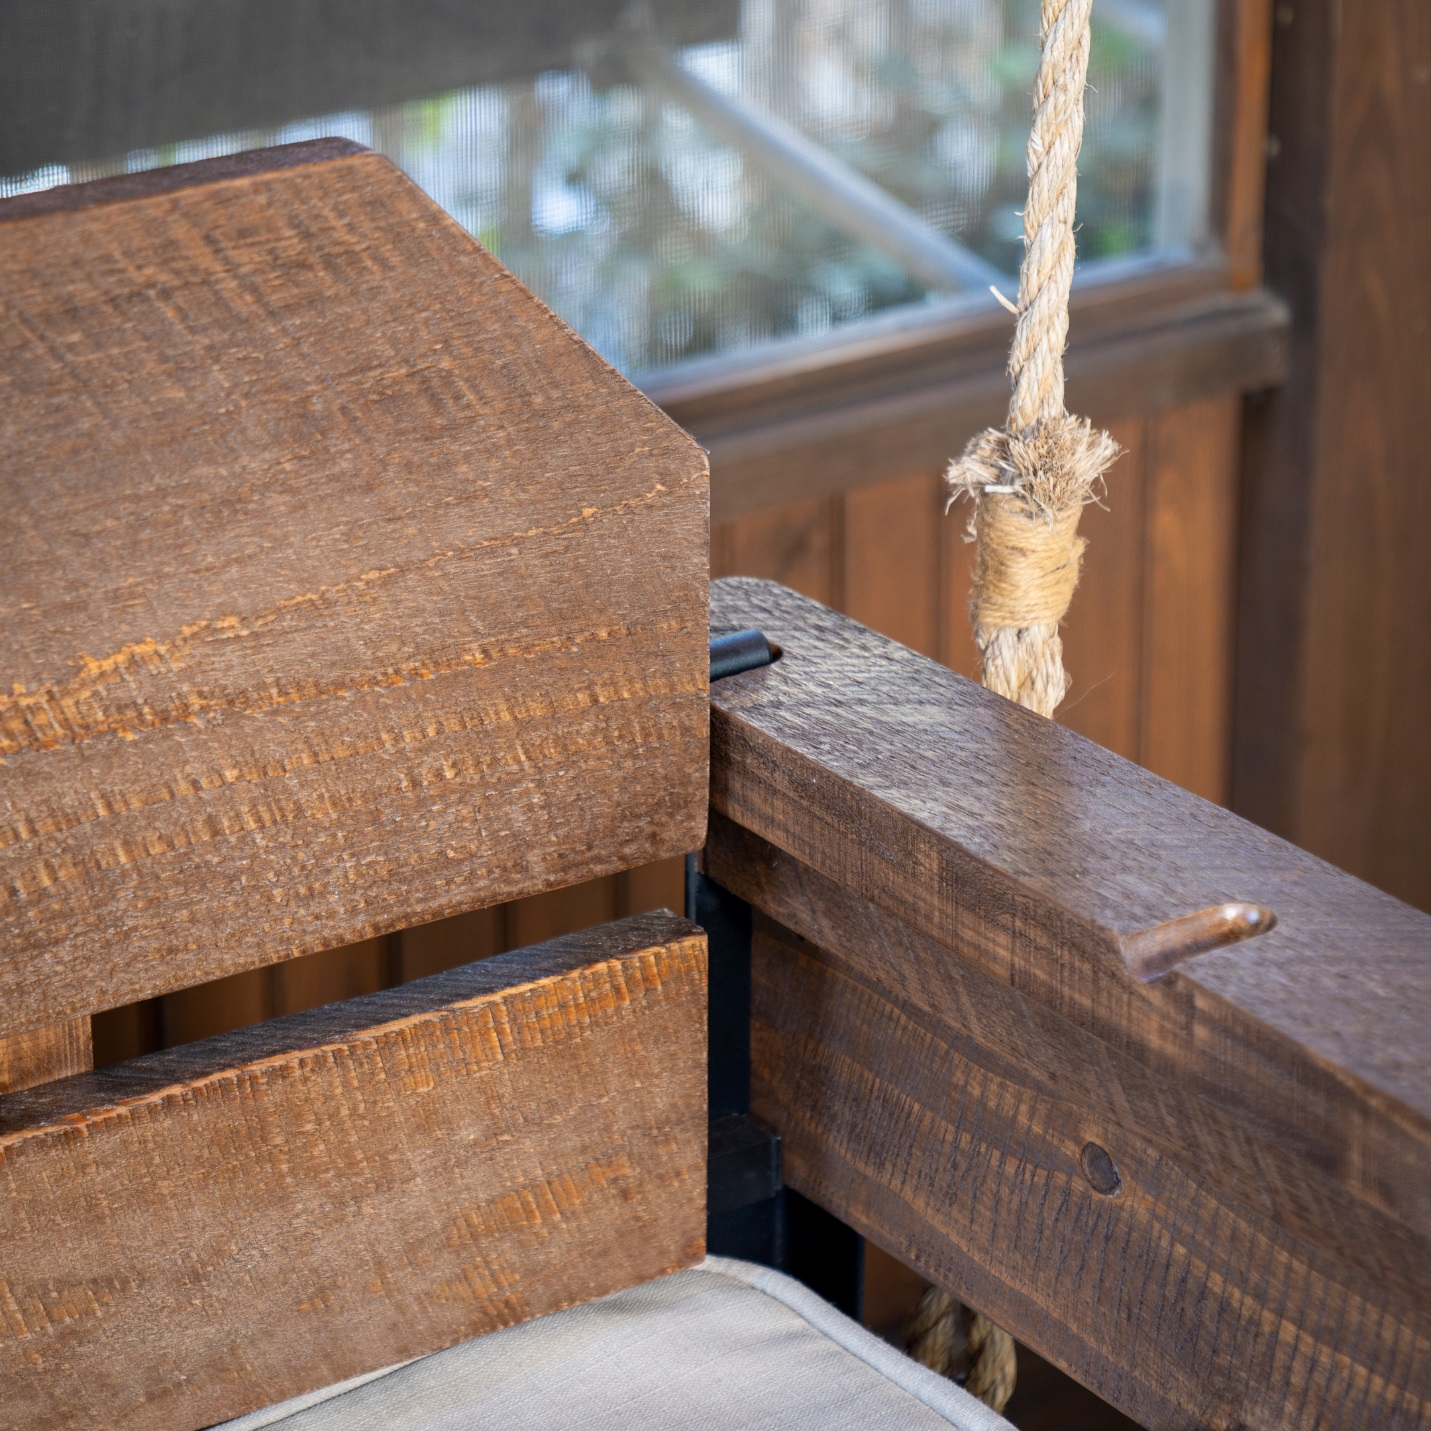 Porch Swing Bed From Porchco A Sleeping Porch Revival